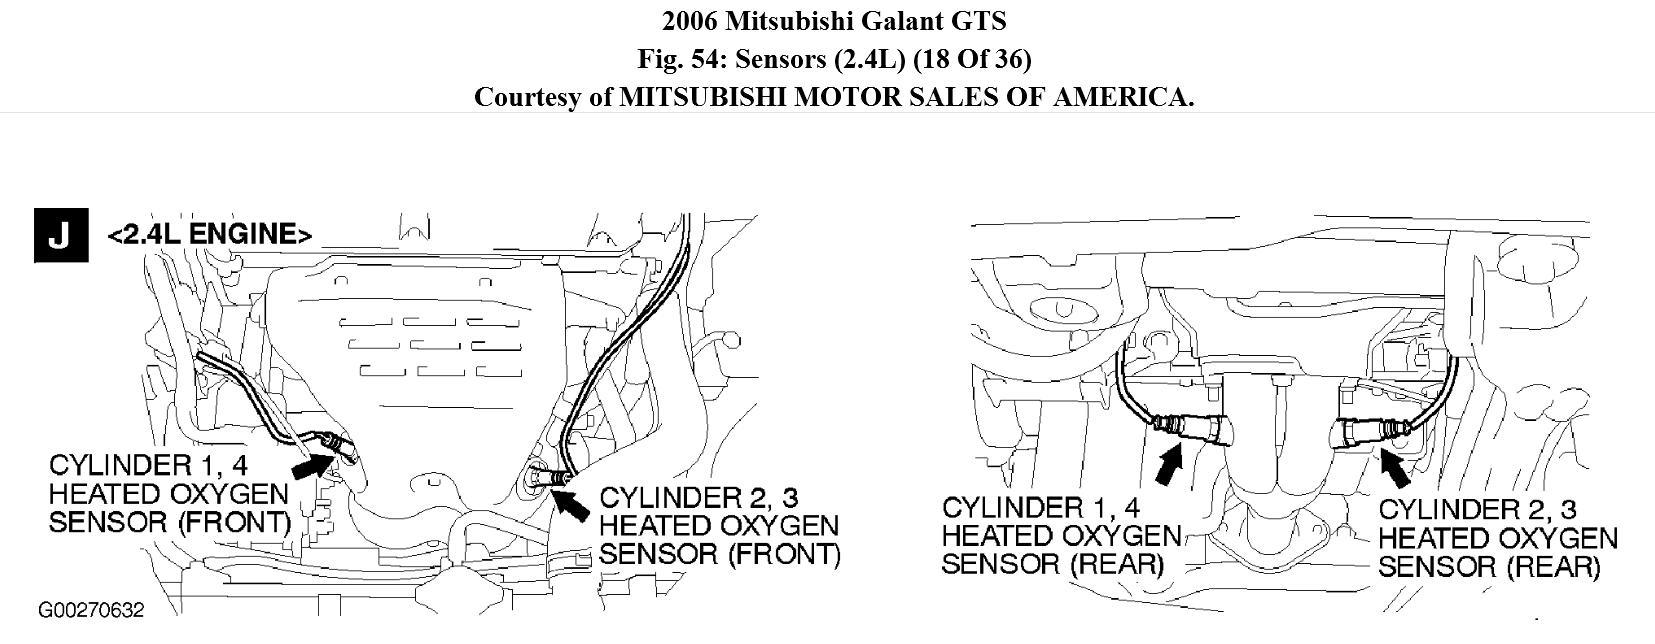 2006 mitsubishi galant code p0421  car has check engine